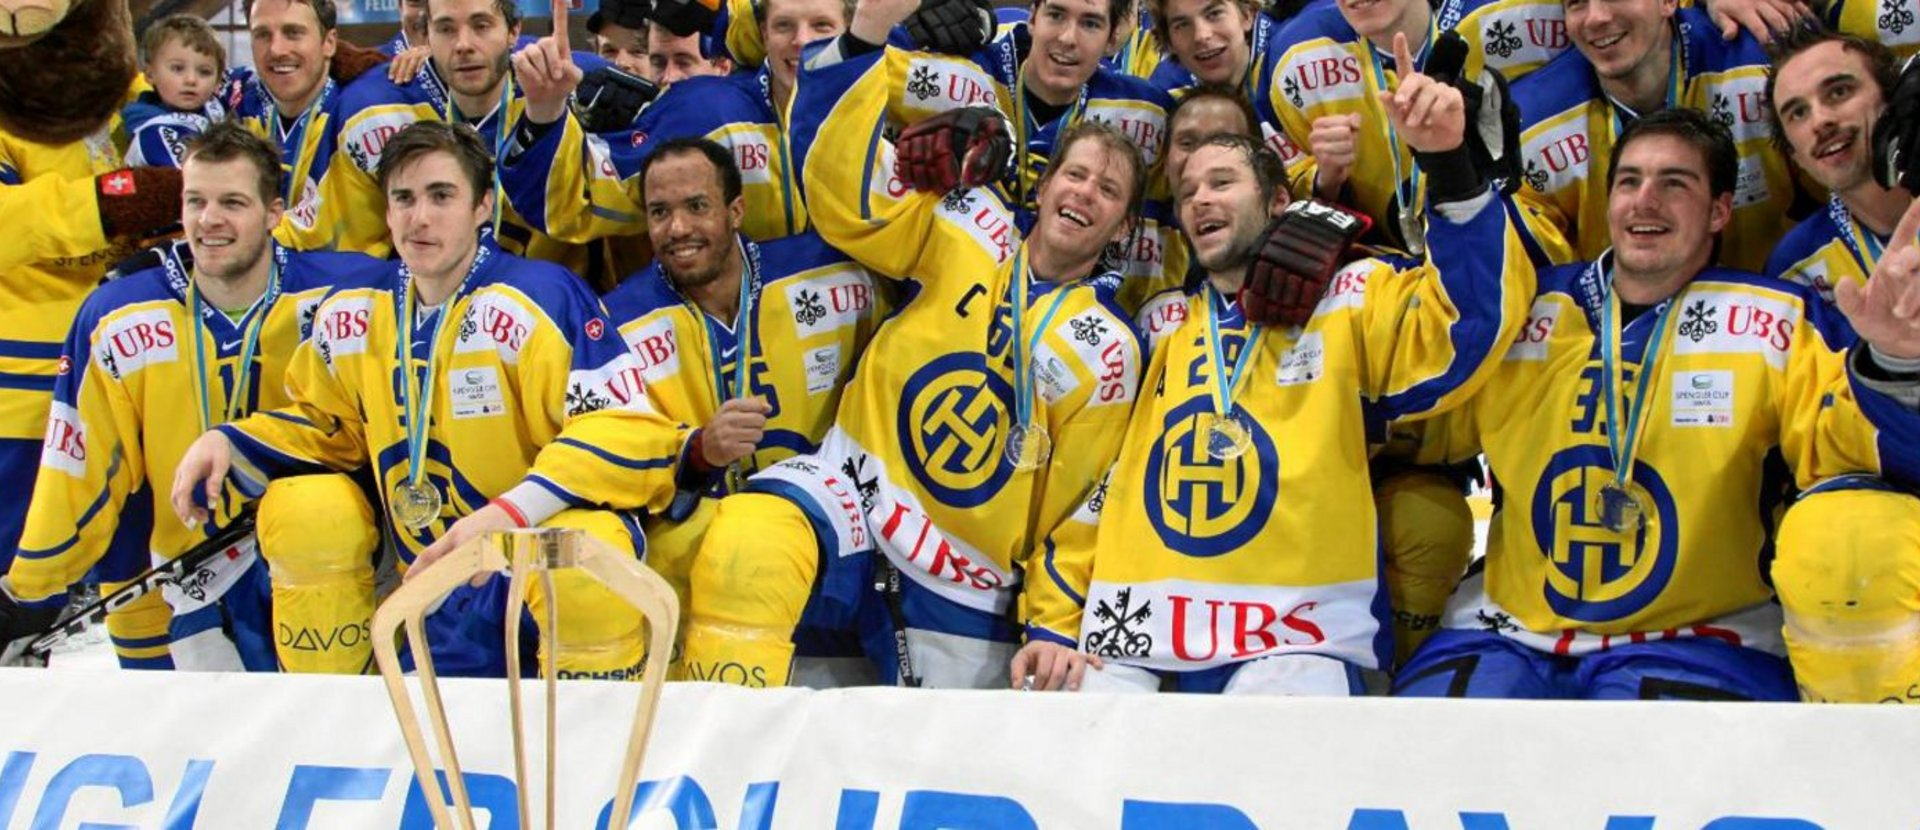 Davoser Eishockey-Tradition